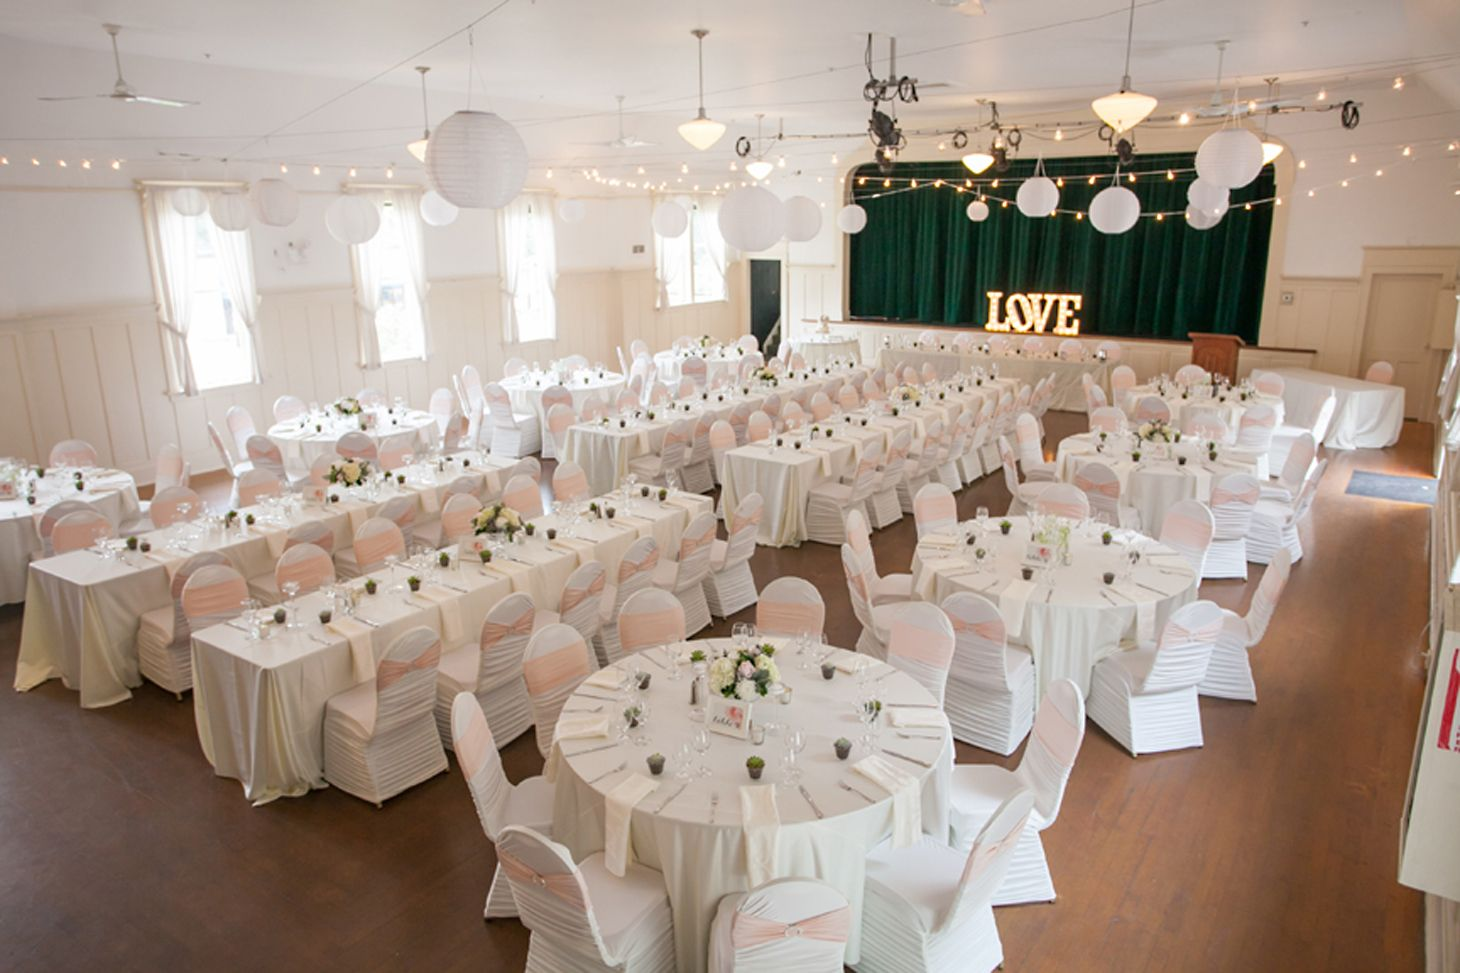 Chair Cover Rentals Langley Office Heating Pad Pin By Becky Kraft On Wedding Ideas Decorations Samantha Amp Ryan Fort Community Hall Http Www Realweddings